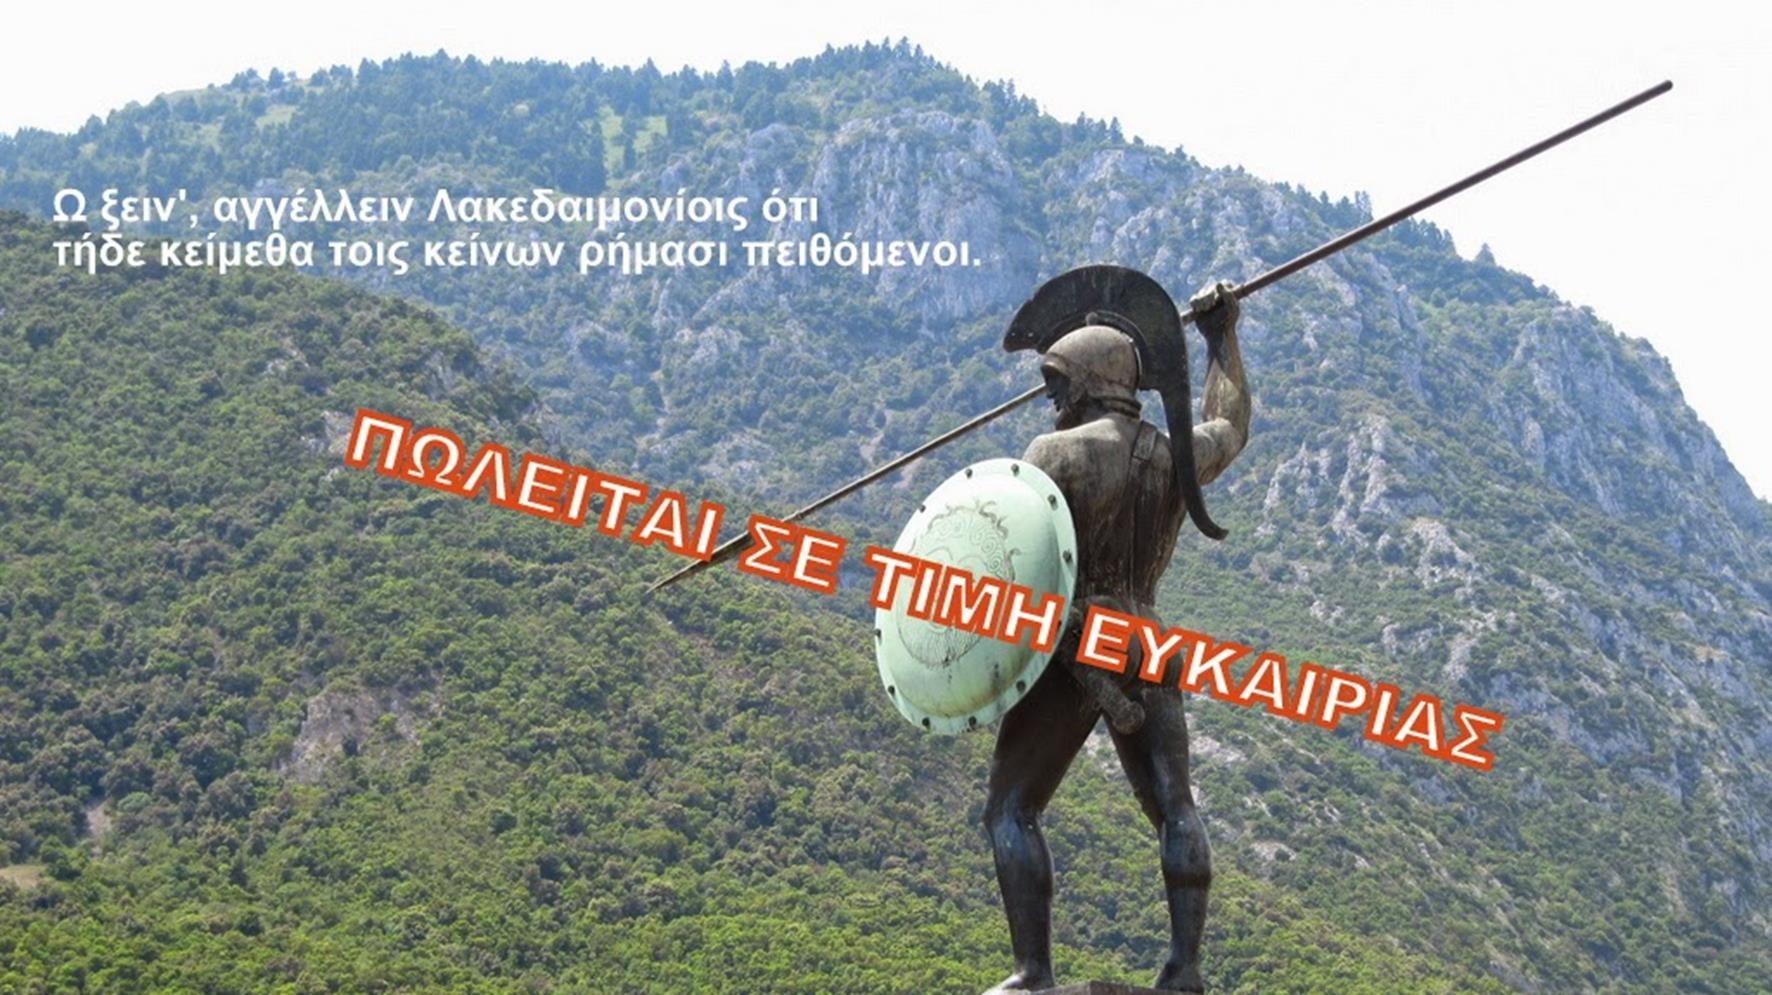 Thermopylae On Sales Amyna Politiki (Copy)